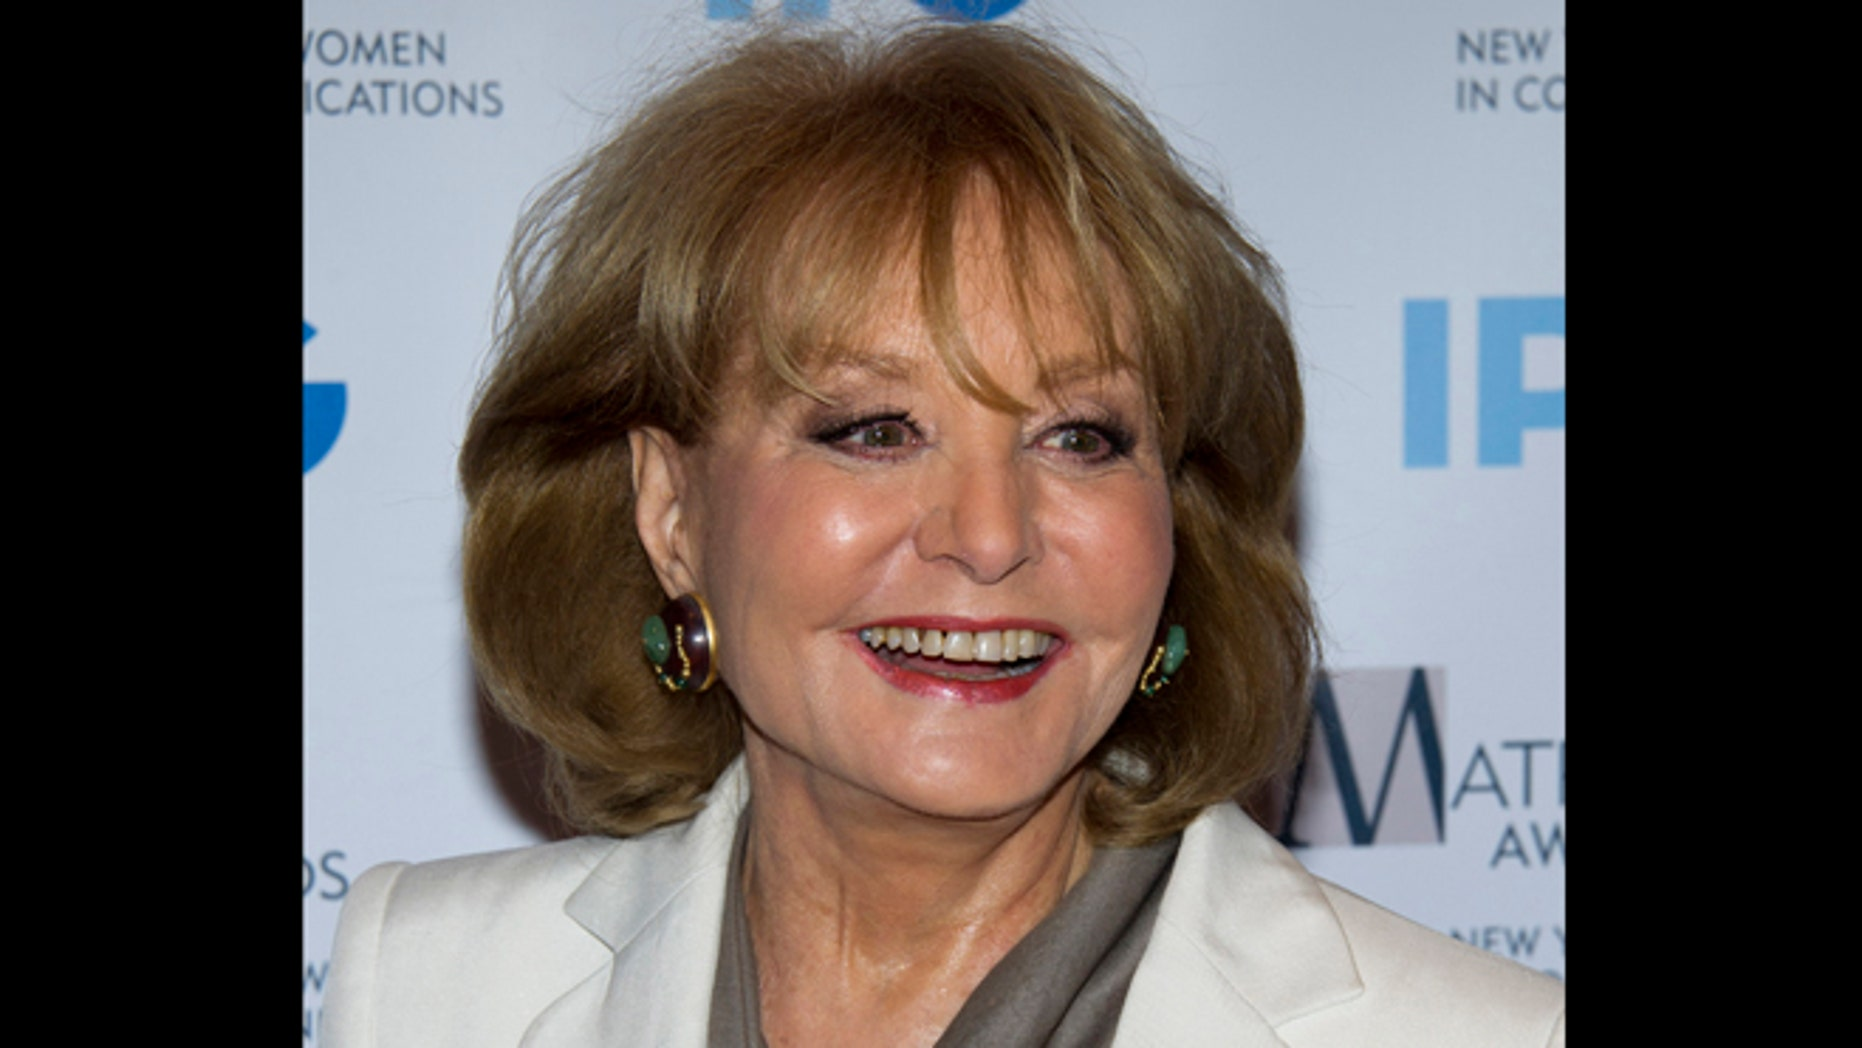 April 23, 2012: Photo, veteran ABC newswoman Barbara Walters arrives to the Matrix Awards in New York. Walters has fallen at an inauguration party in Washington and has been hospitalized, according to an ABC News spokesman, Sunday, Jan. 20, 2013.